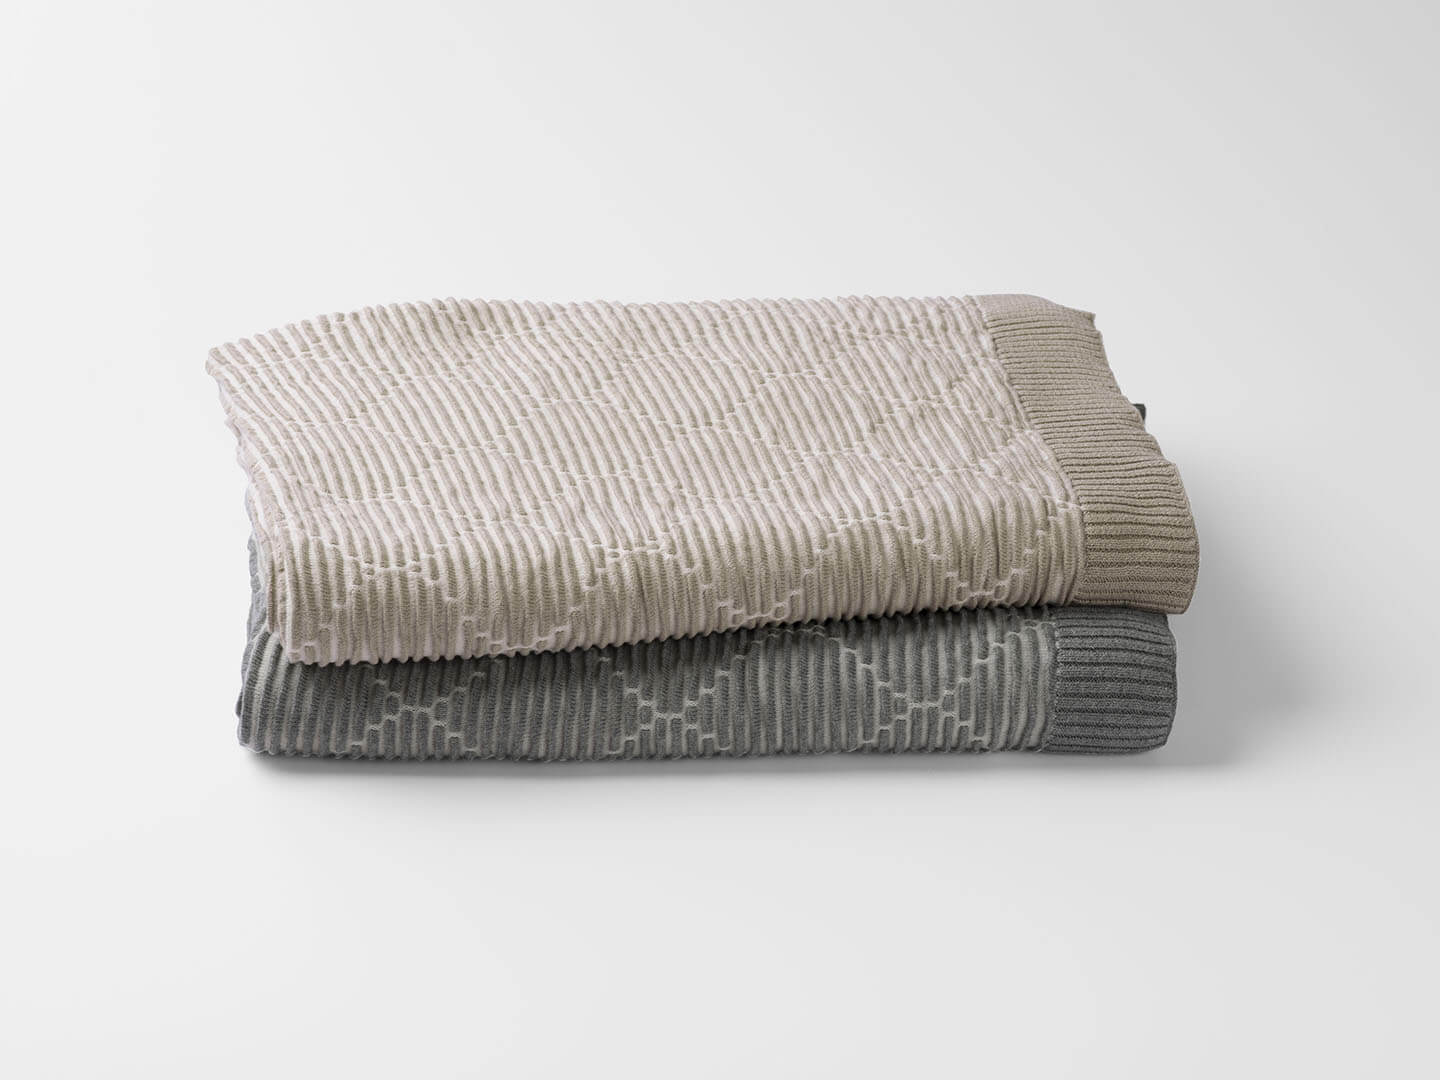 Ogee Organic Cotton Knit Throw Blanket - SunCoastSea